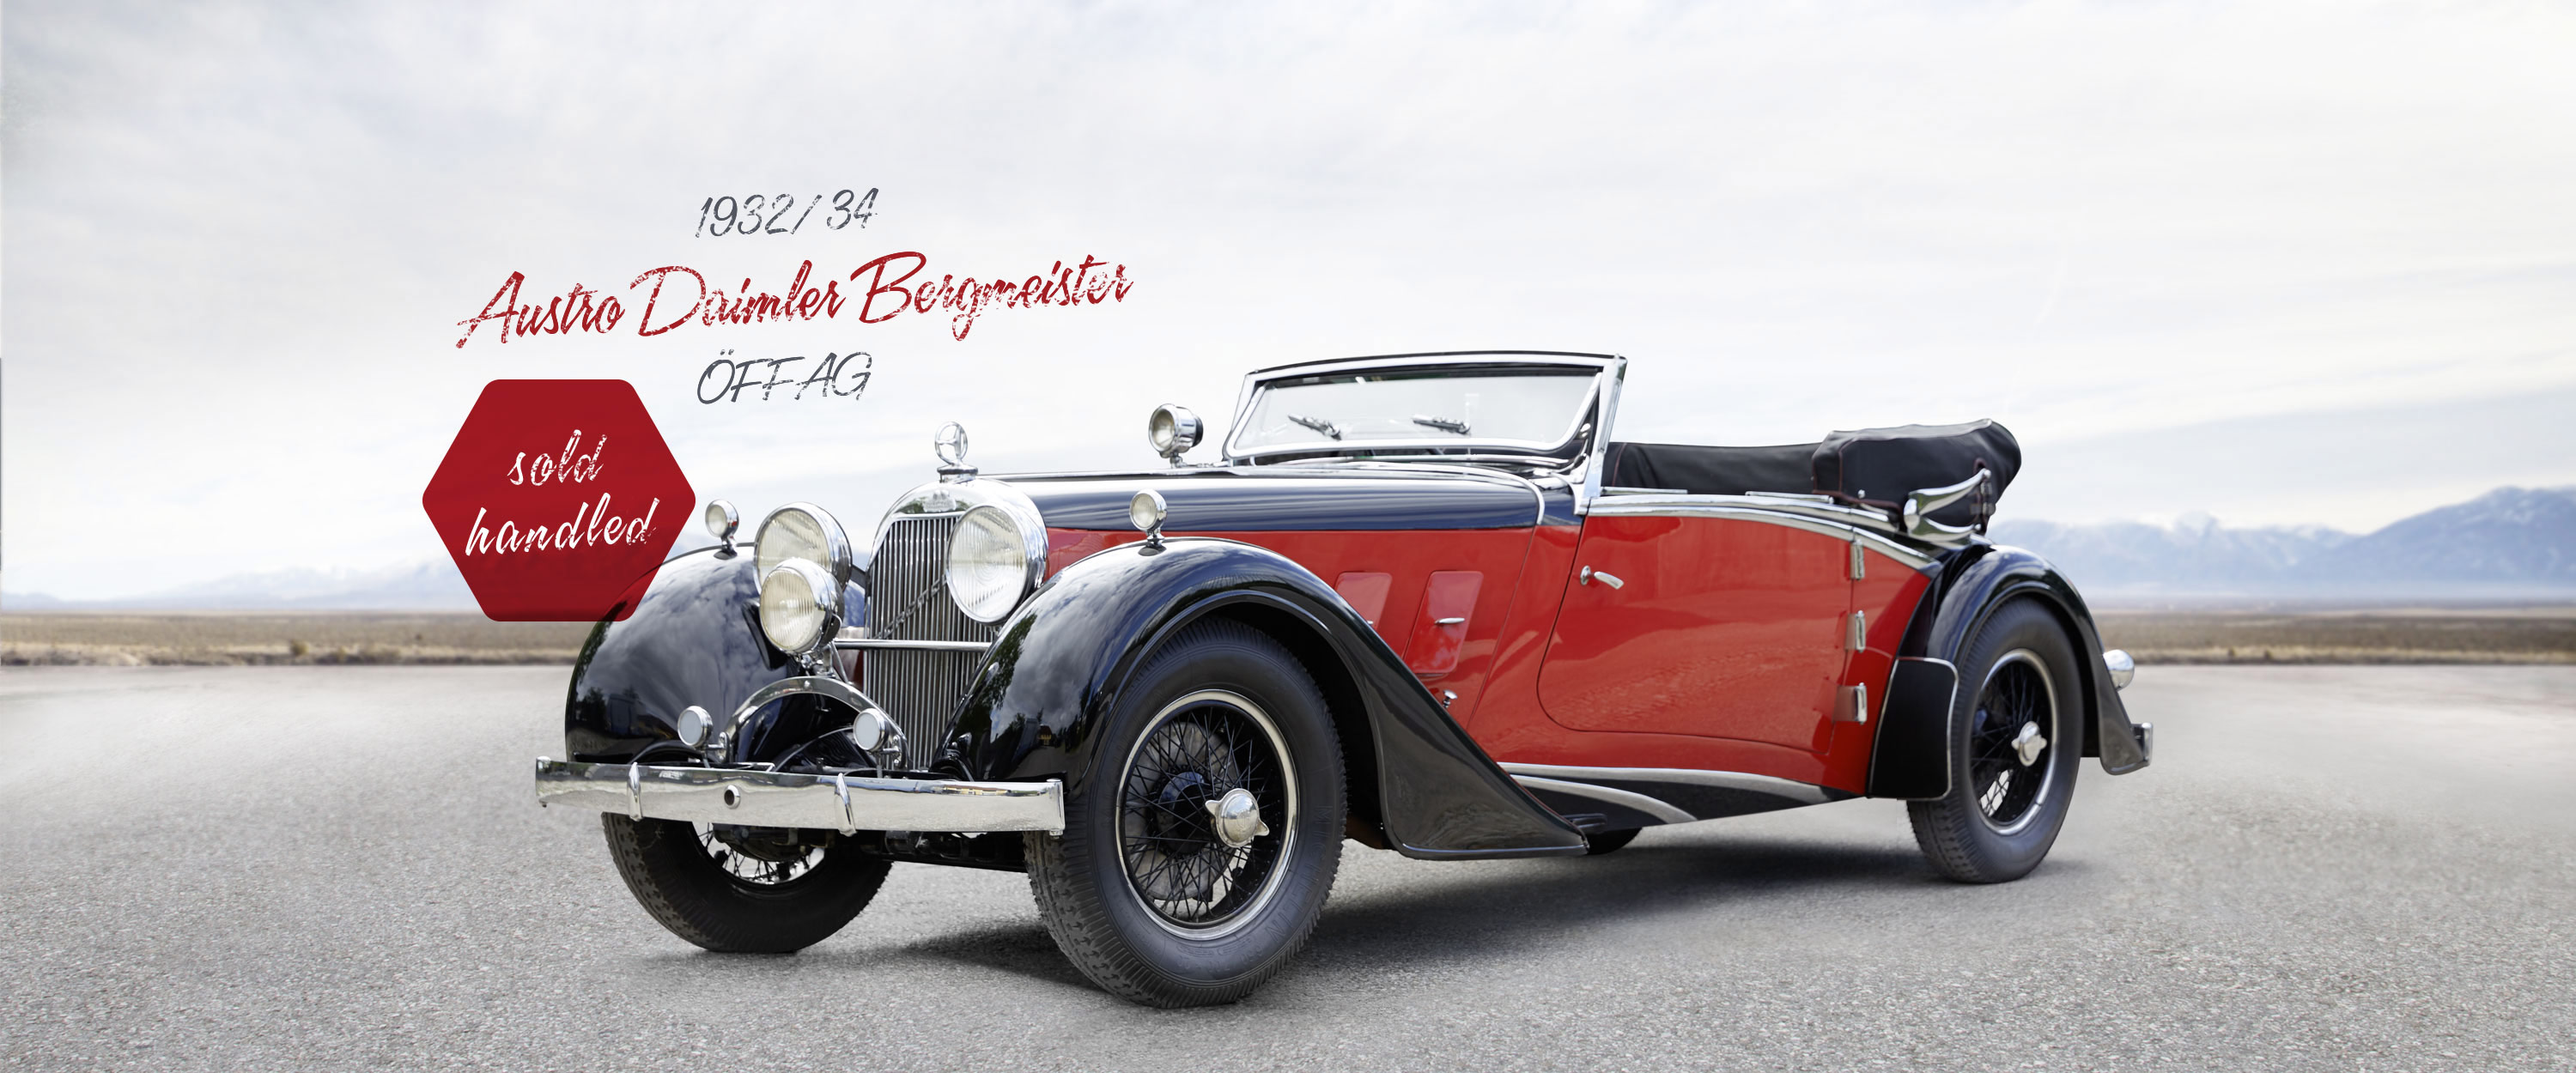 web_header_austrodaimler_sold